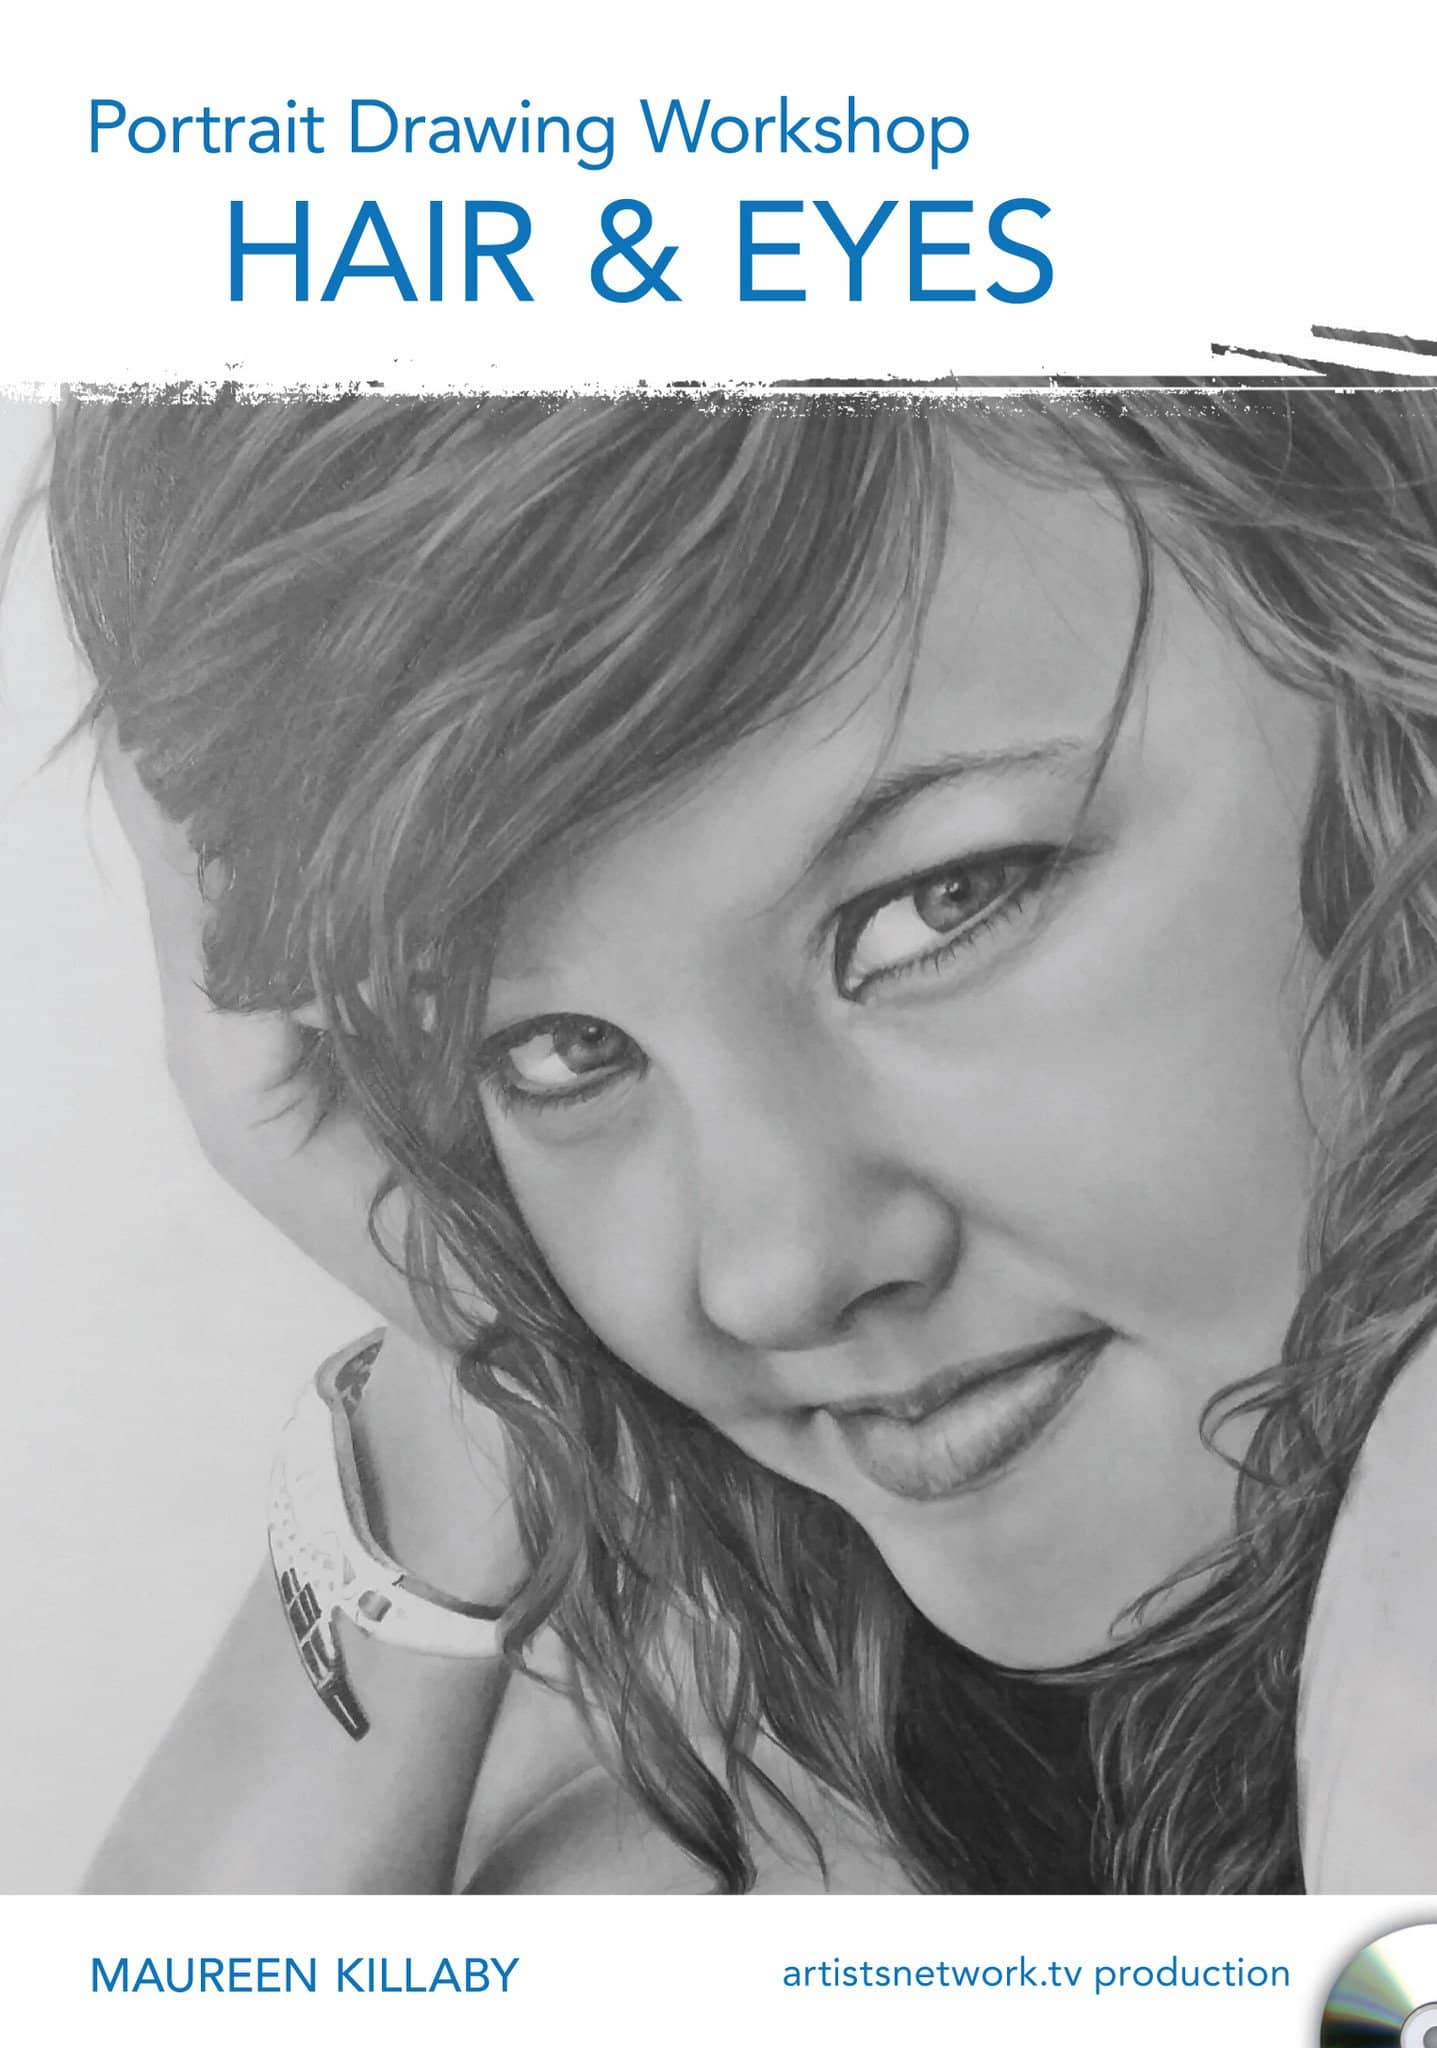 Portrait Drawing Workshop - Hair & Eyes with Maureen Killaby